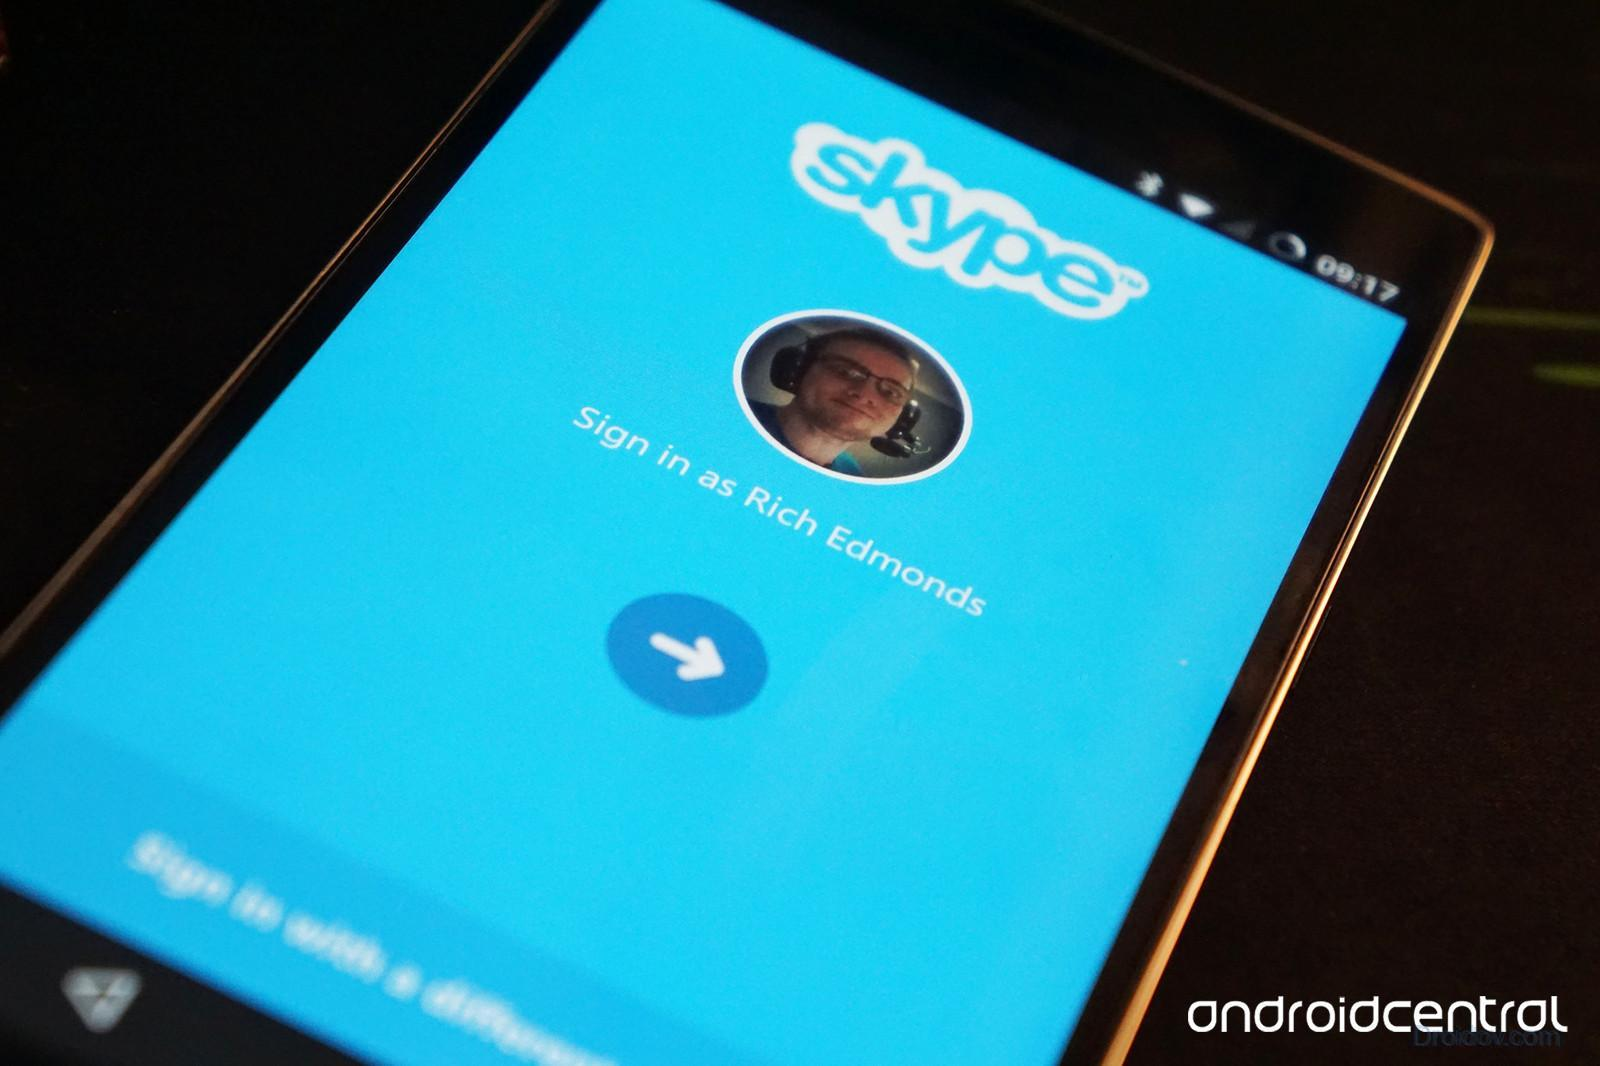 skype-login-android-hero